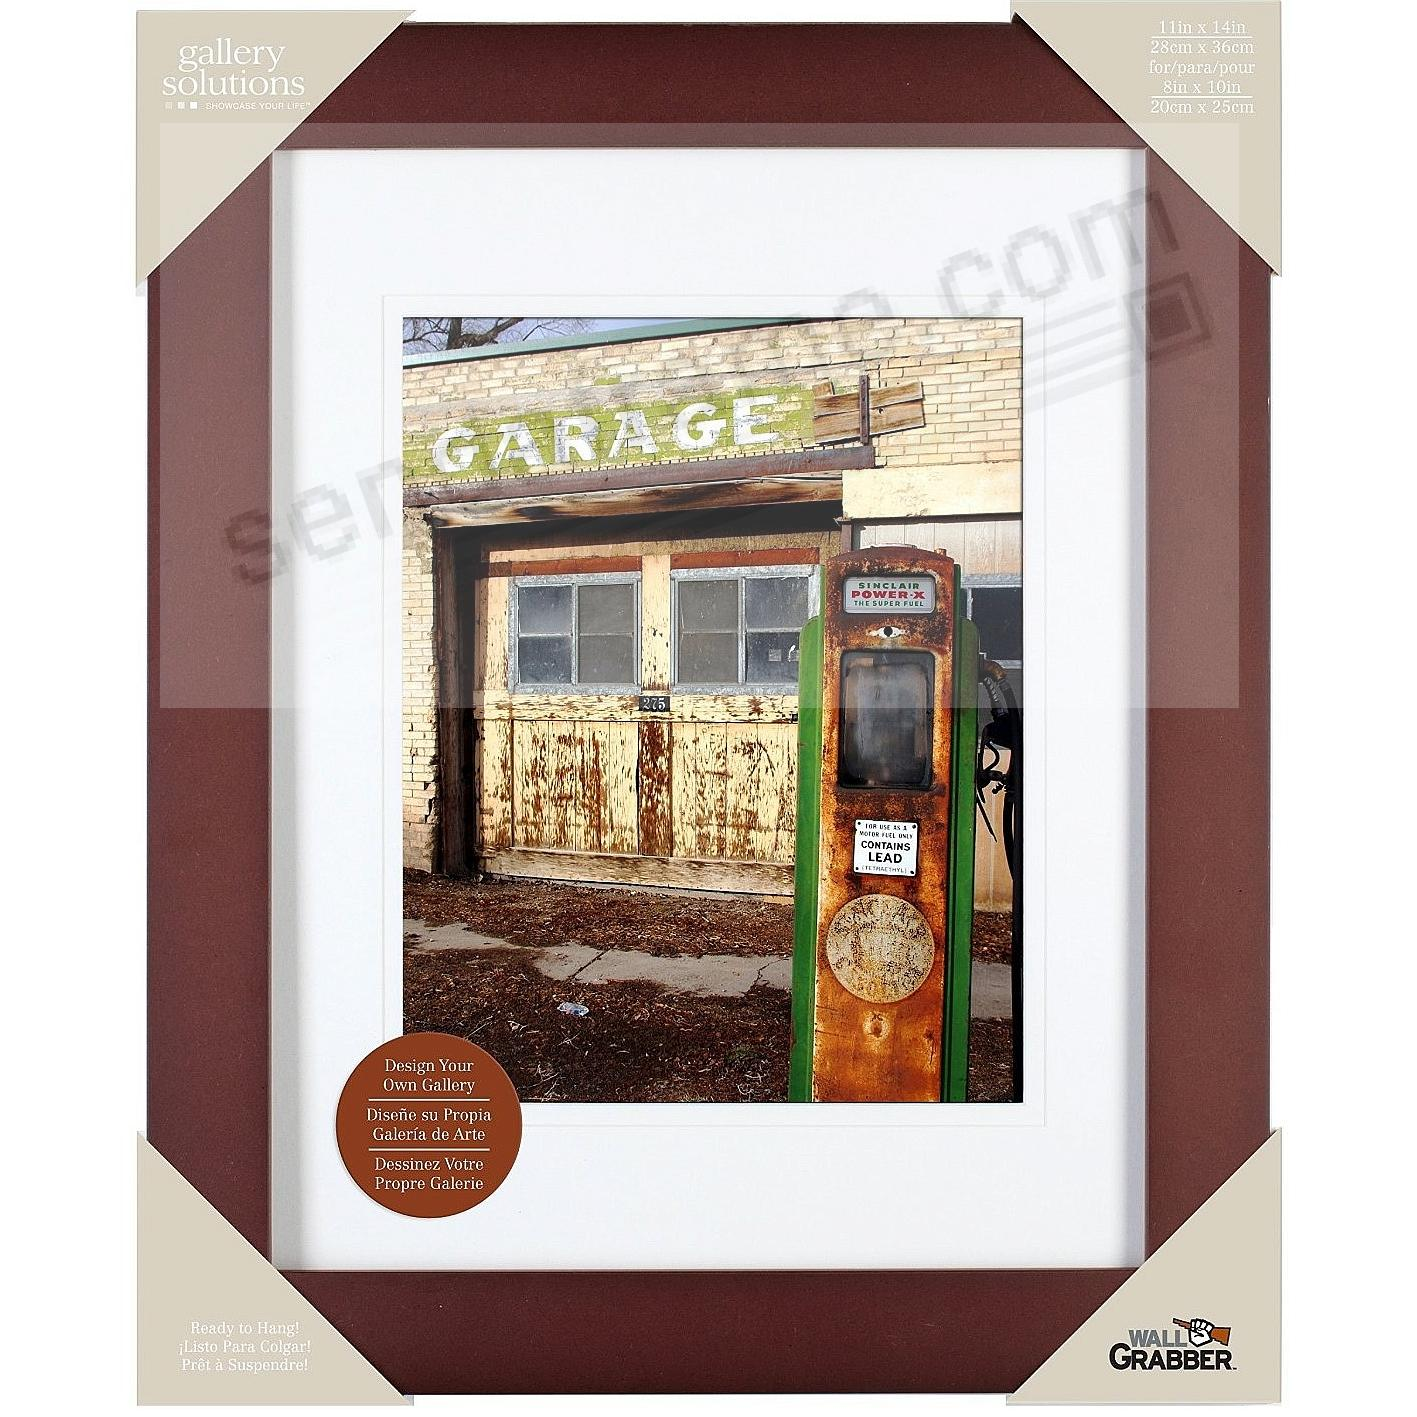 Picture frames photo albums personalized and engraved digital expresso wood wall frame 11x14 matted to 8x10 by gallery solutionstrade jeuxipadfo Choice Image